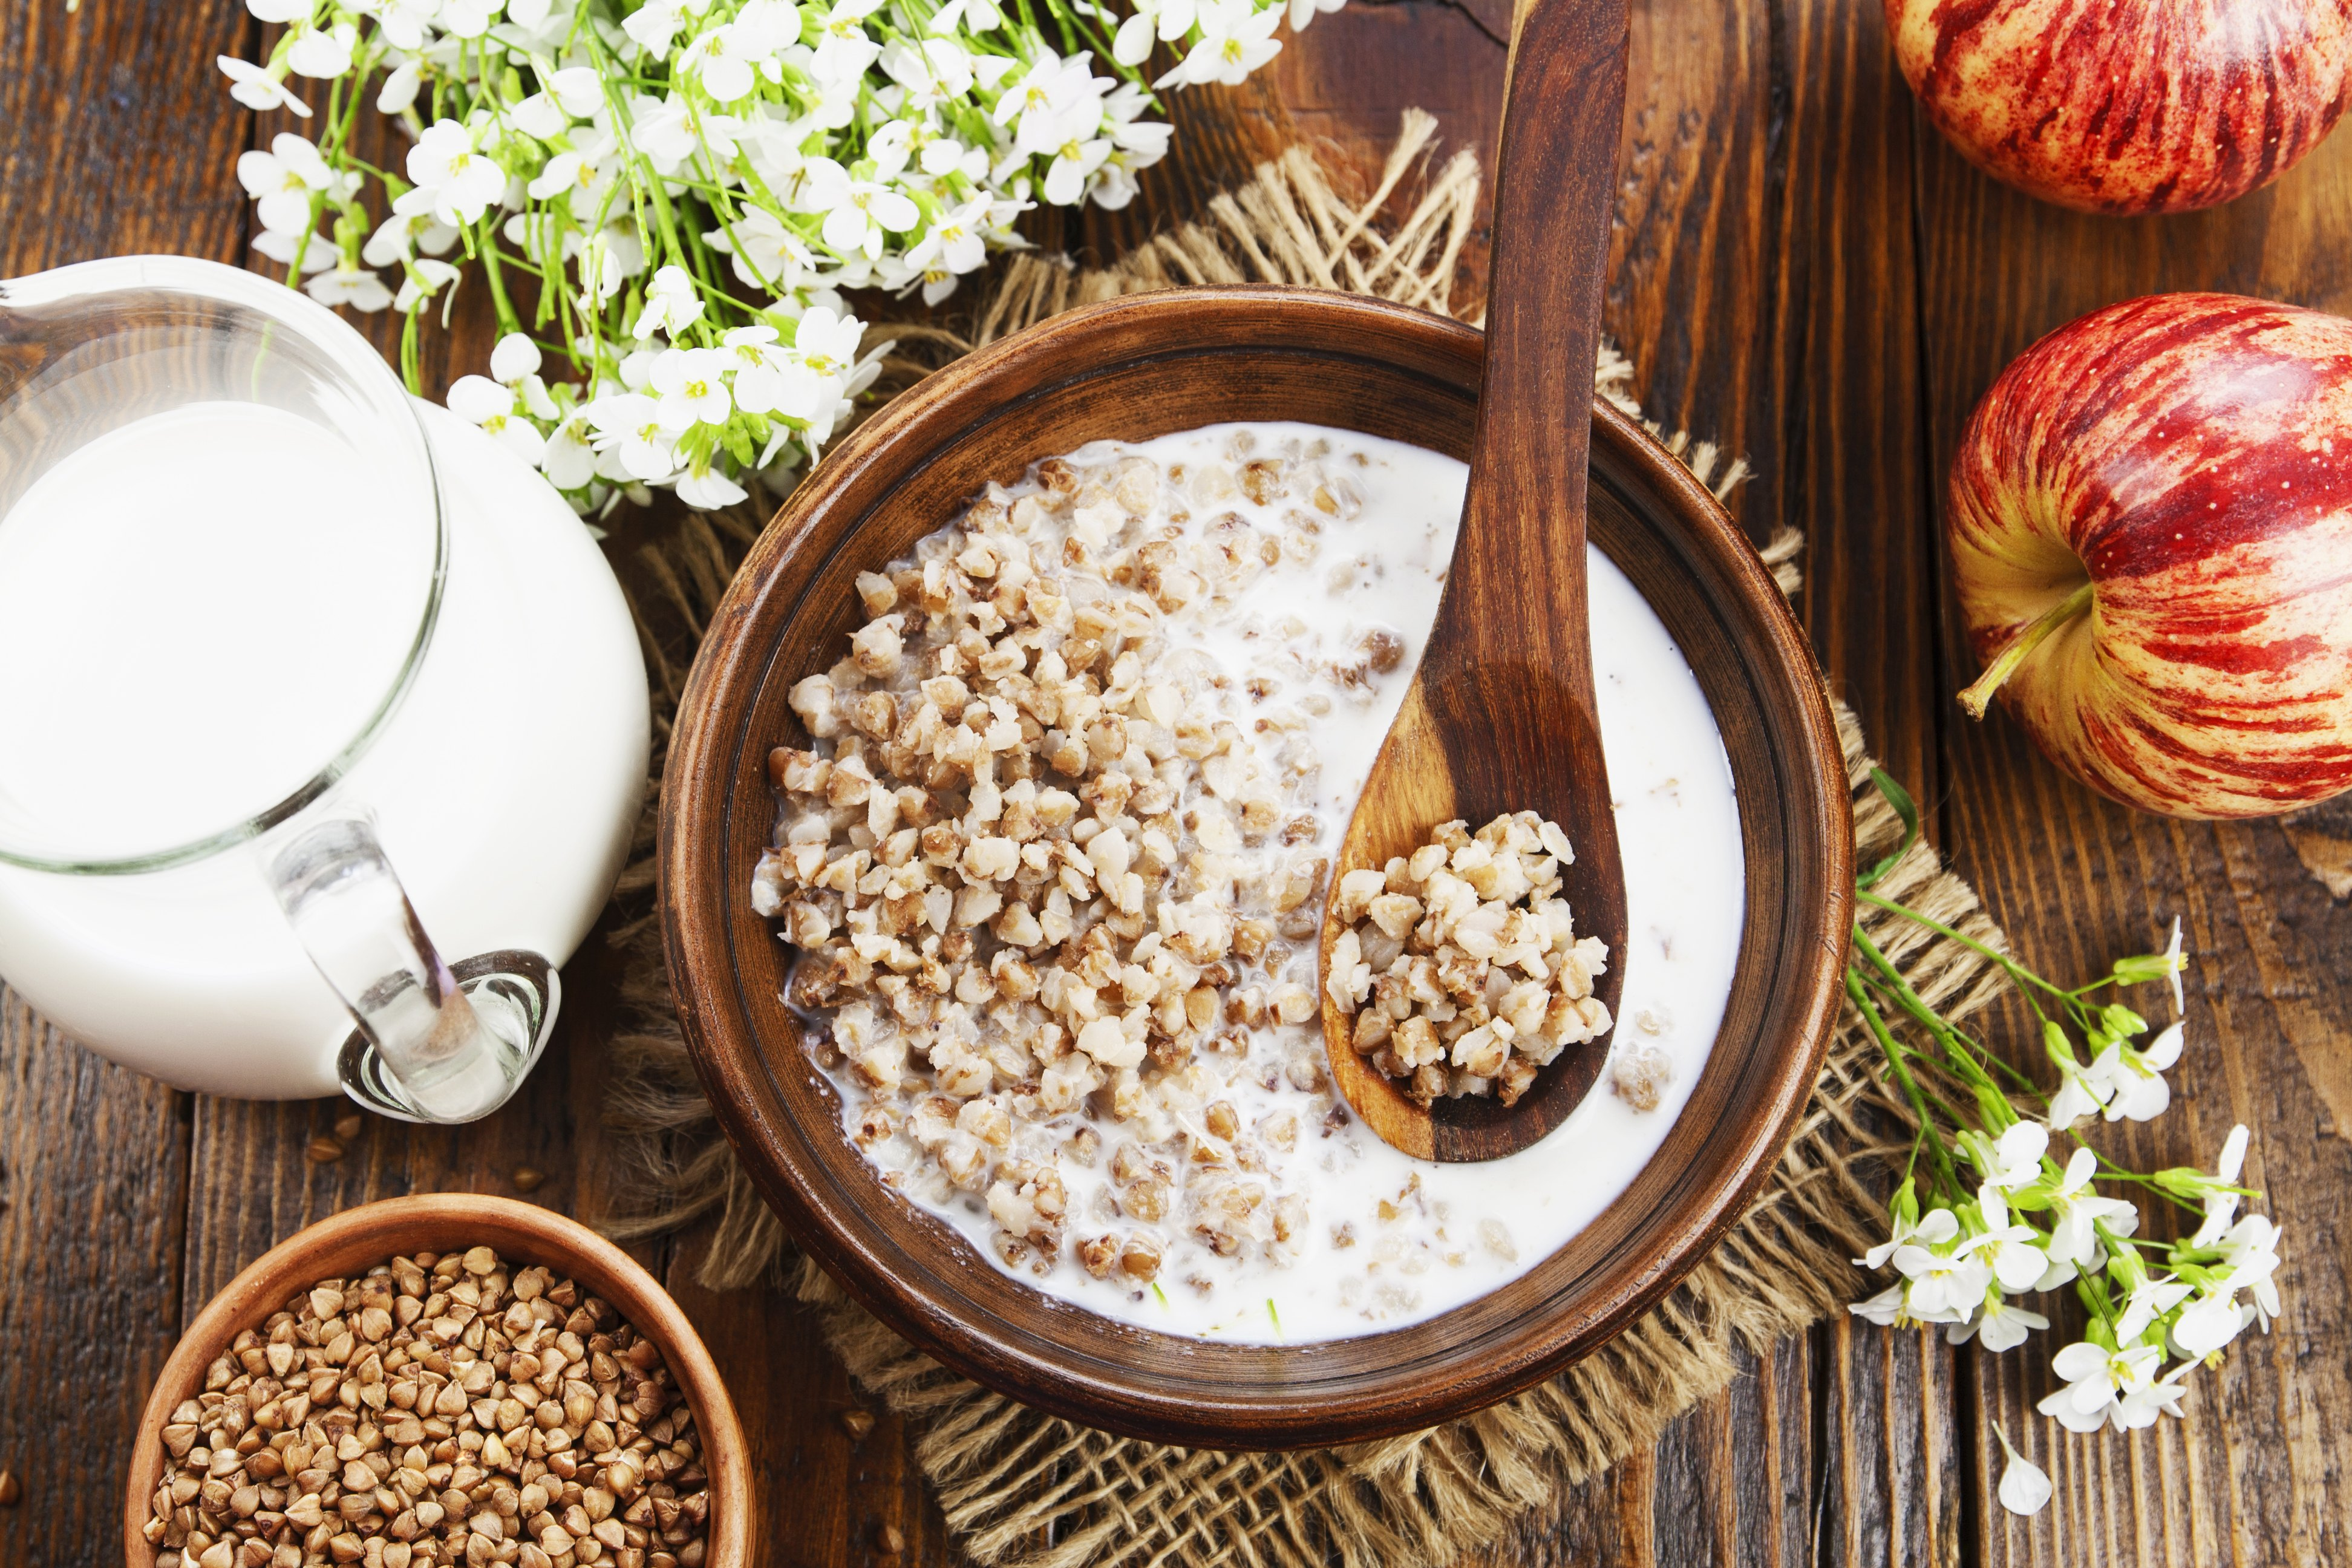 What Is Buckwheat and Is It Gluten-Free?